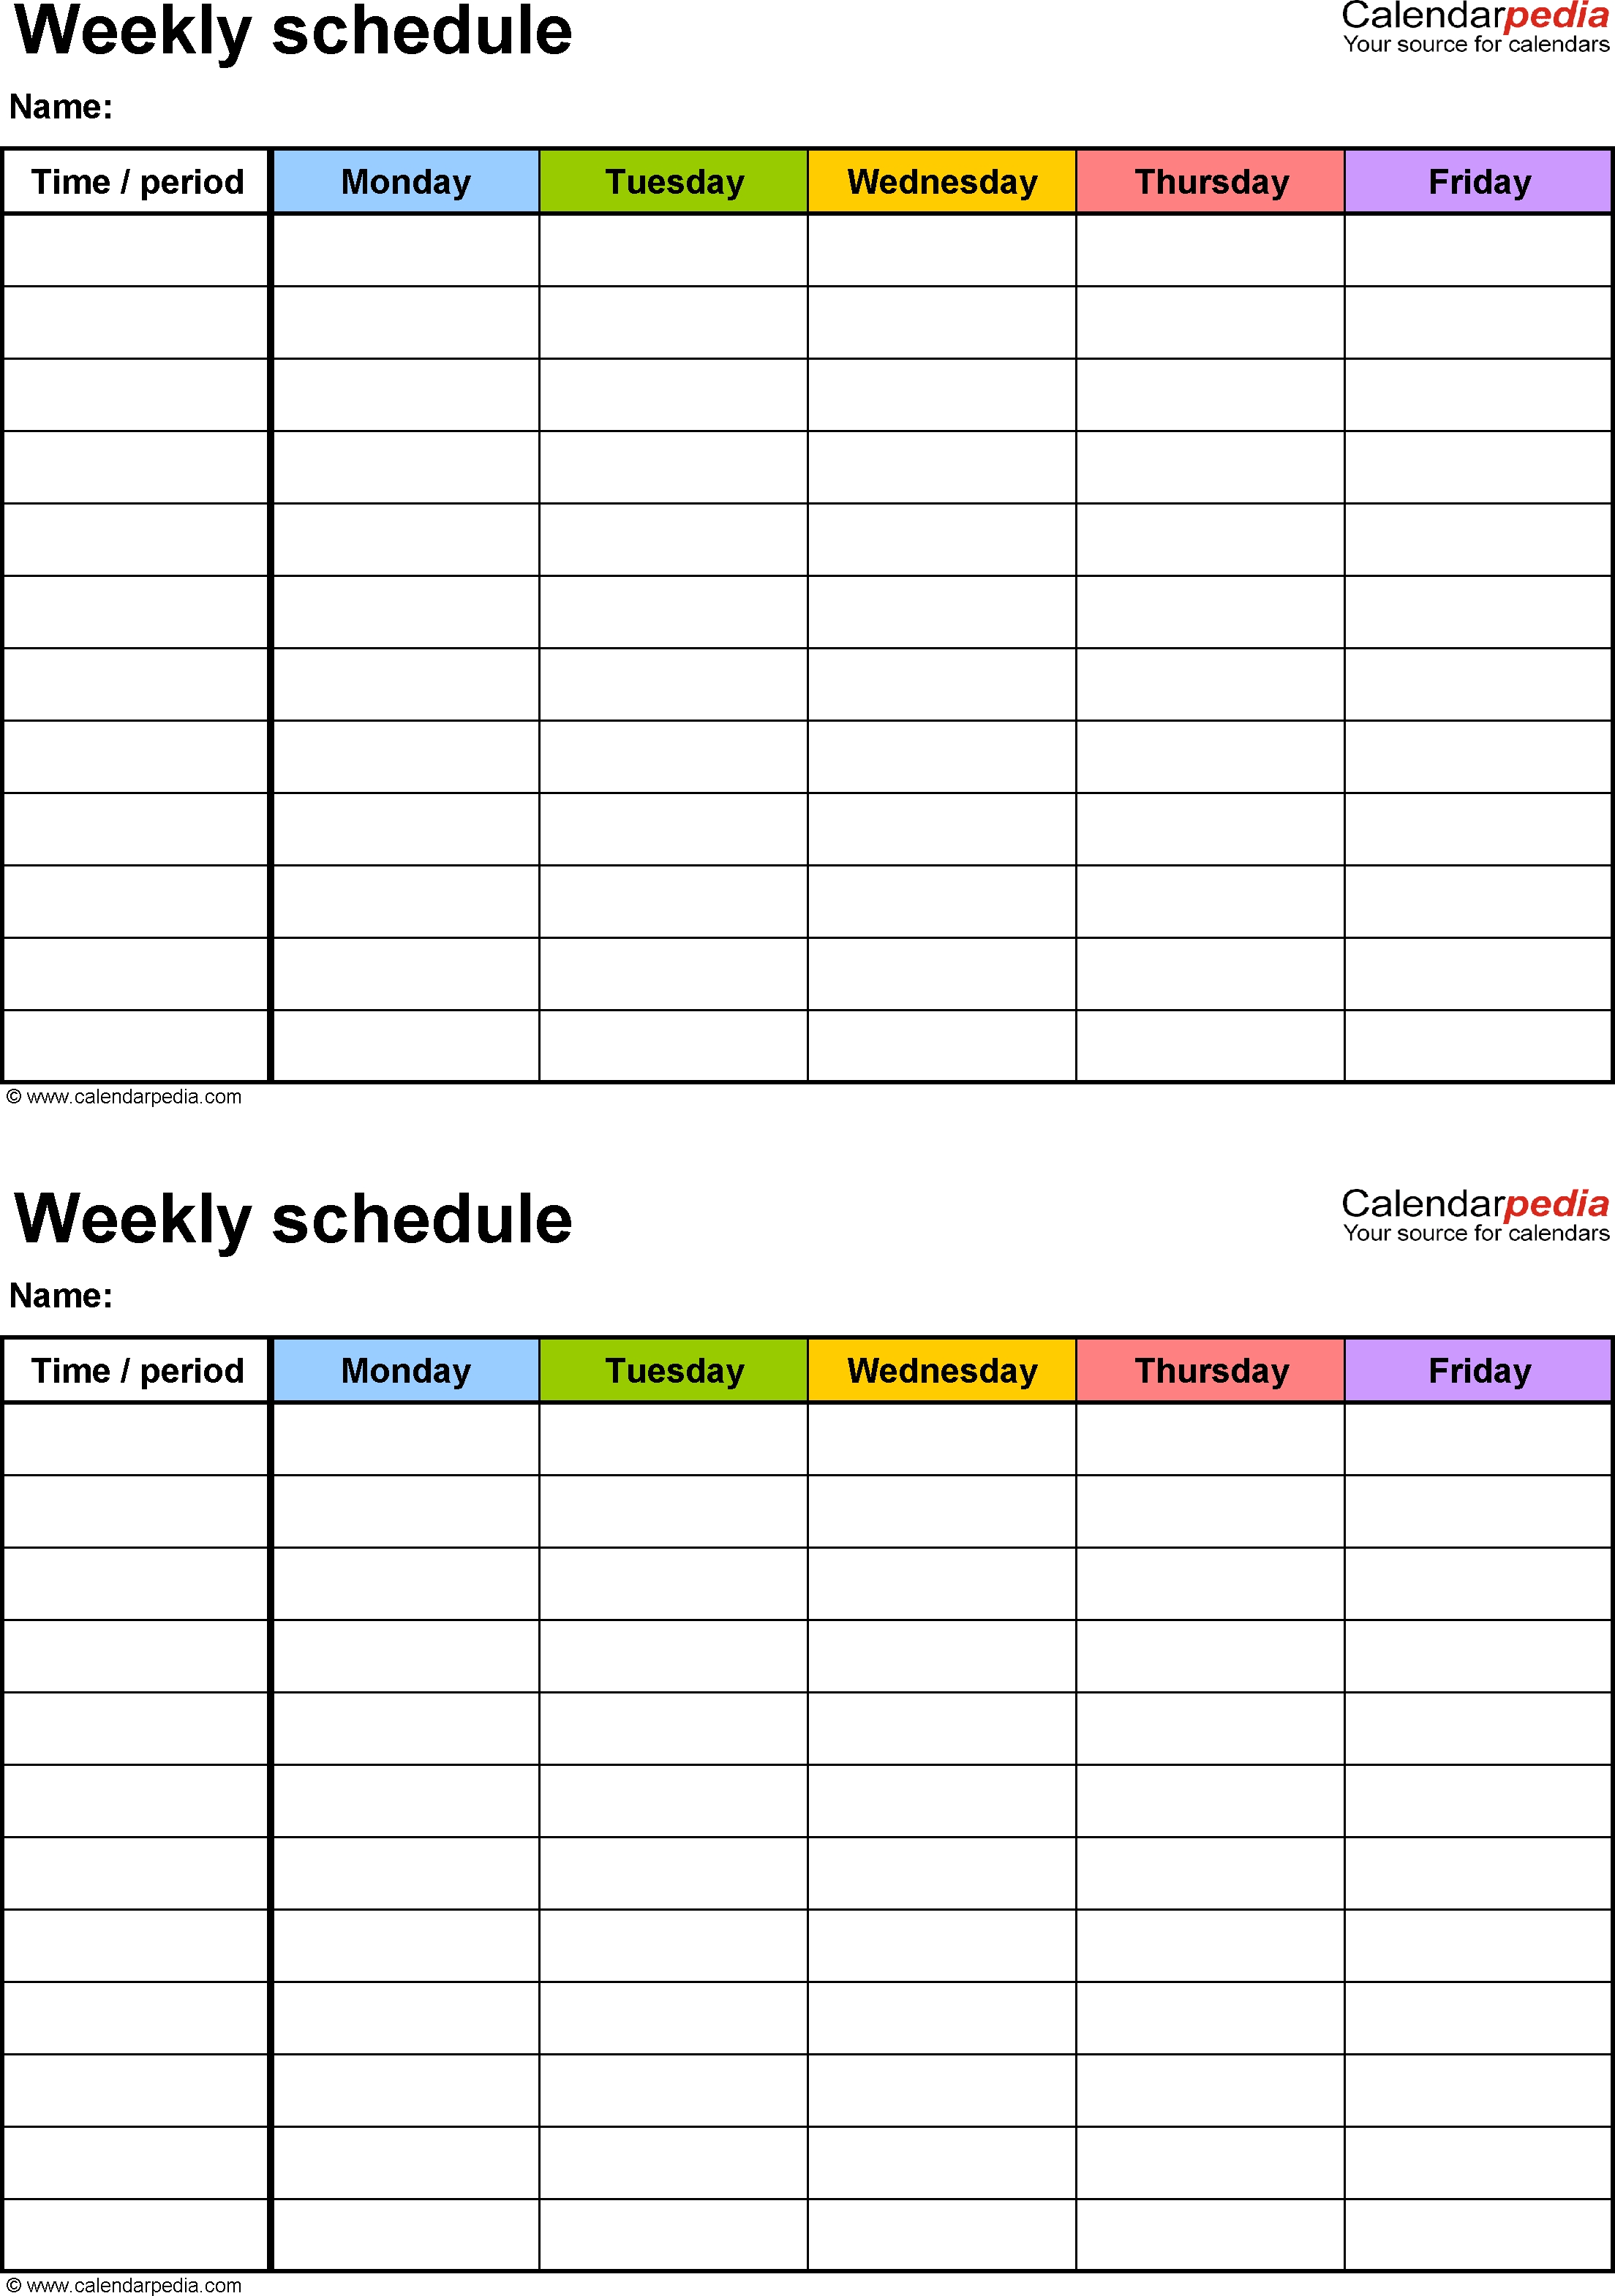 Free Weekly Schedule Templates For Pdf - 18 Templates pertaining to Monday Through Sunday Weekly Horizontal Calendar